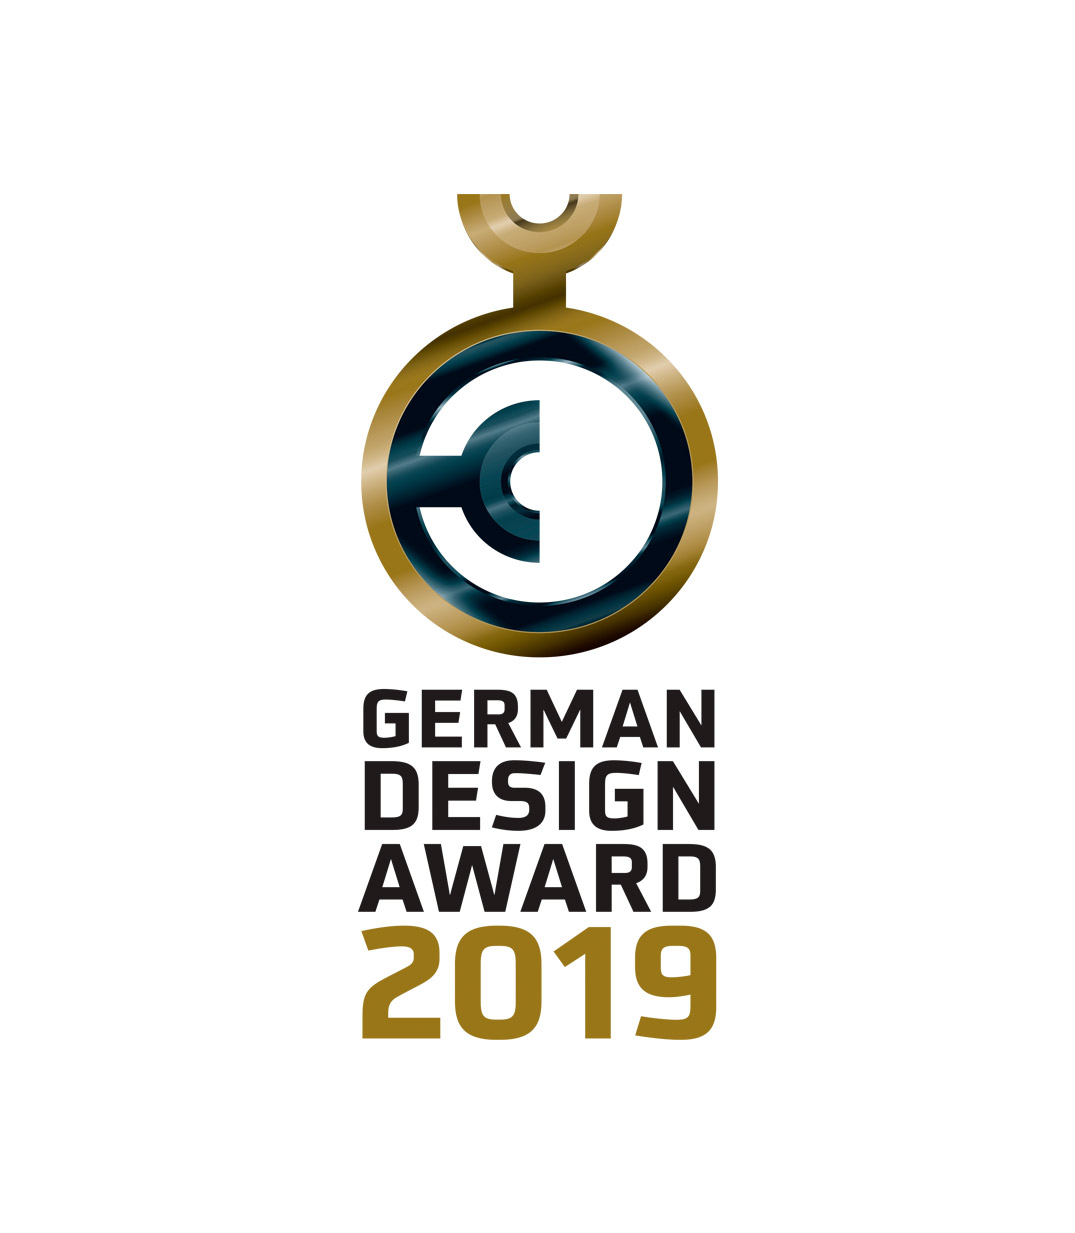 We were once again awarded at the German Design Award 2019